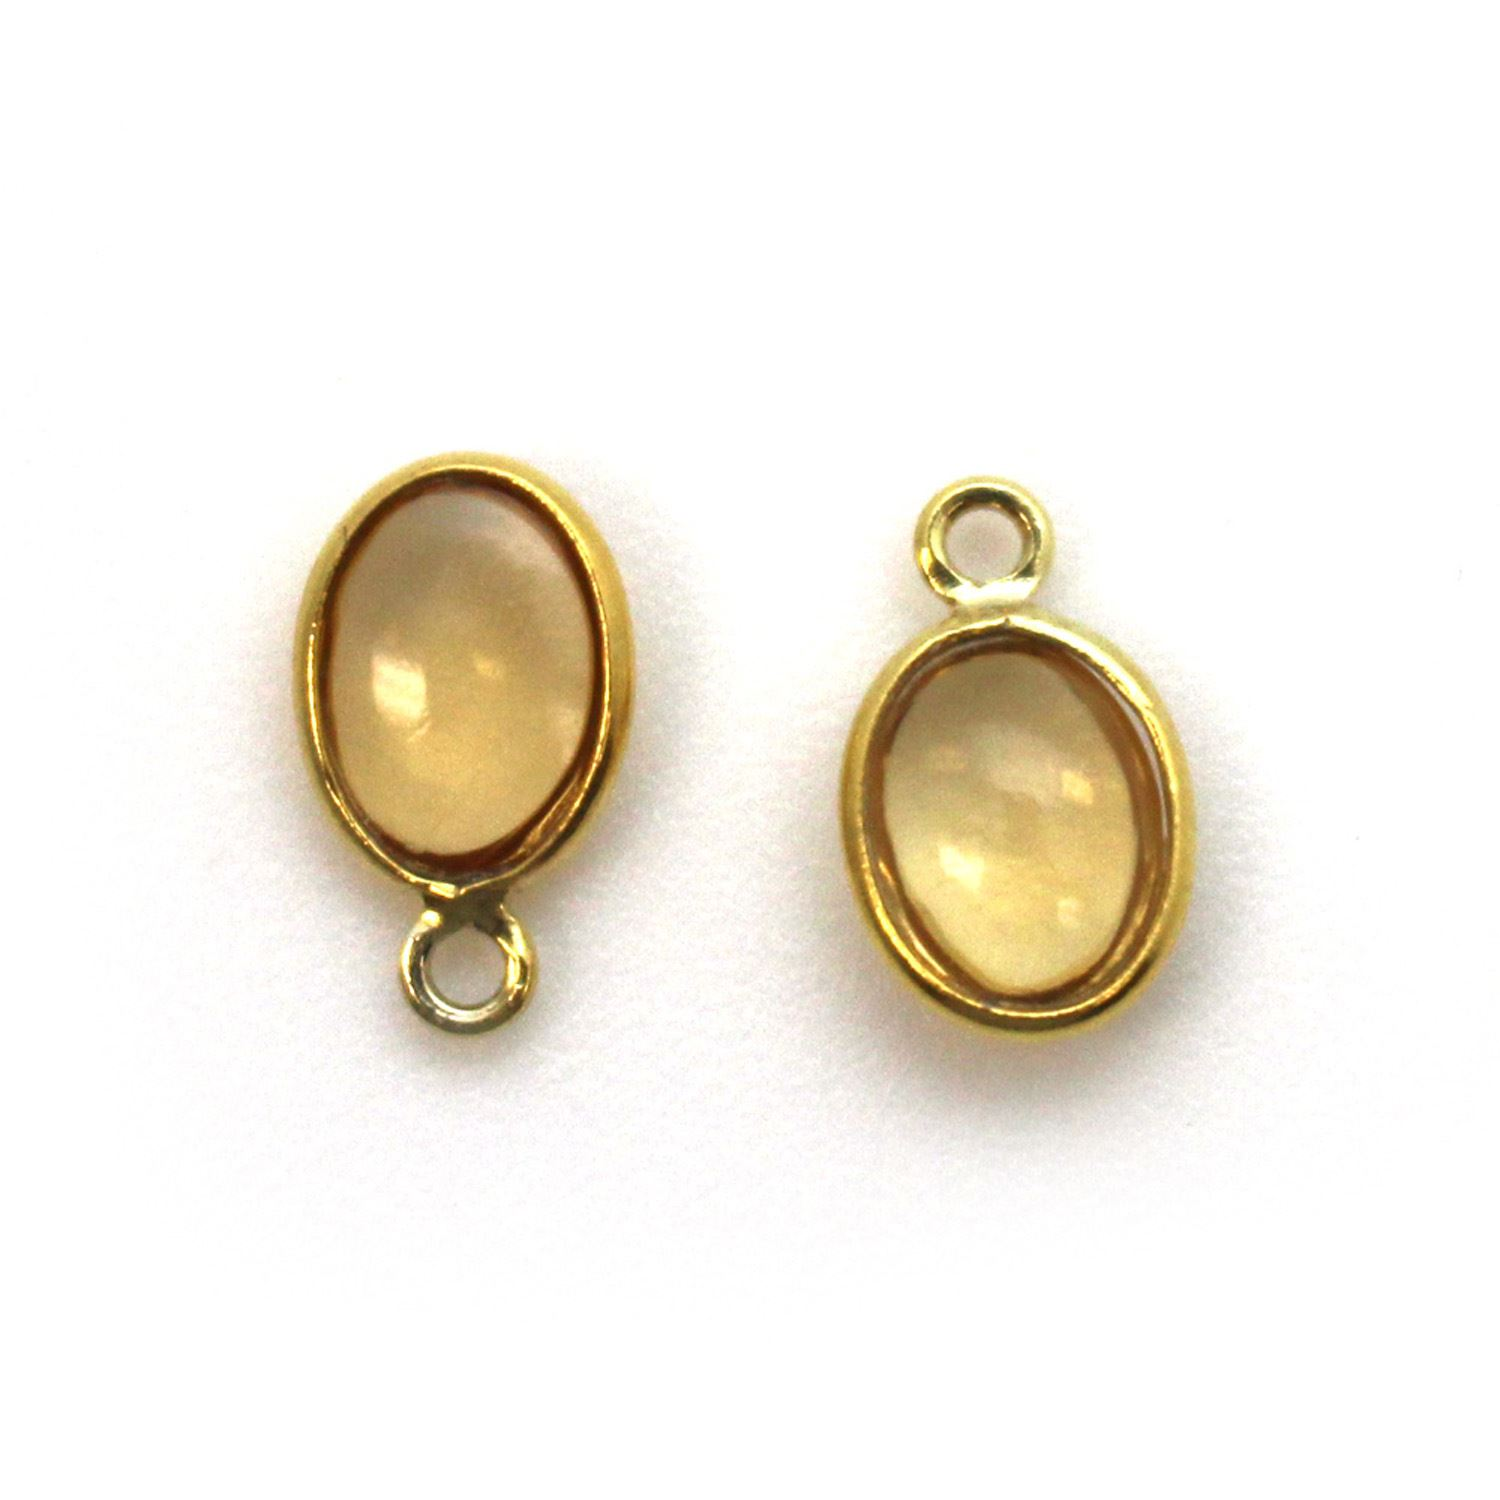 Bezel Charm Pendant - Gold Plated Silver Charm - Natural Citrine - Tiny Oval Shape